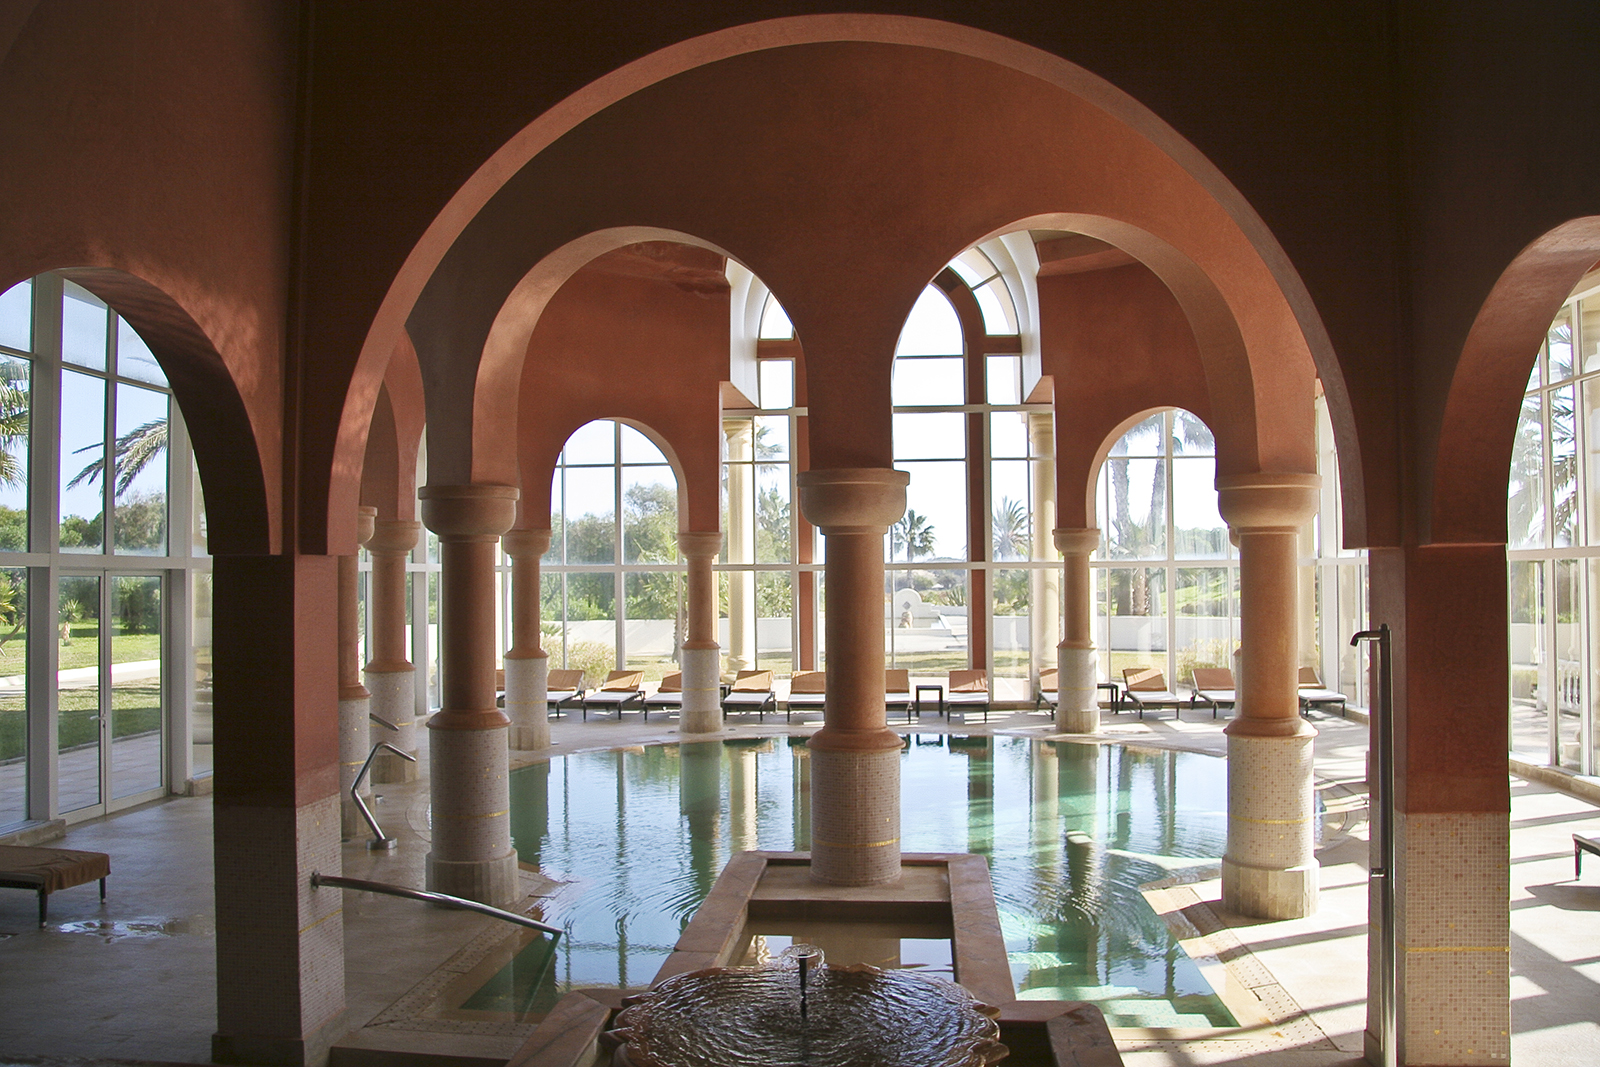 Residence-tunis-spa-tunisia-room-suggestion